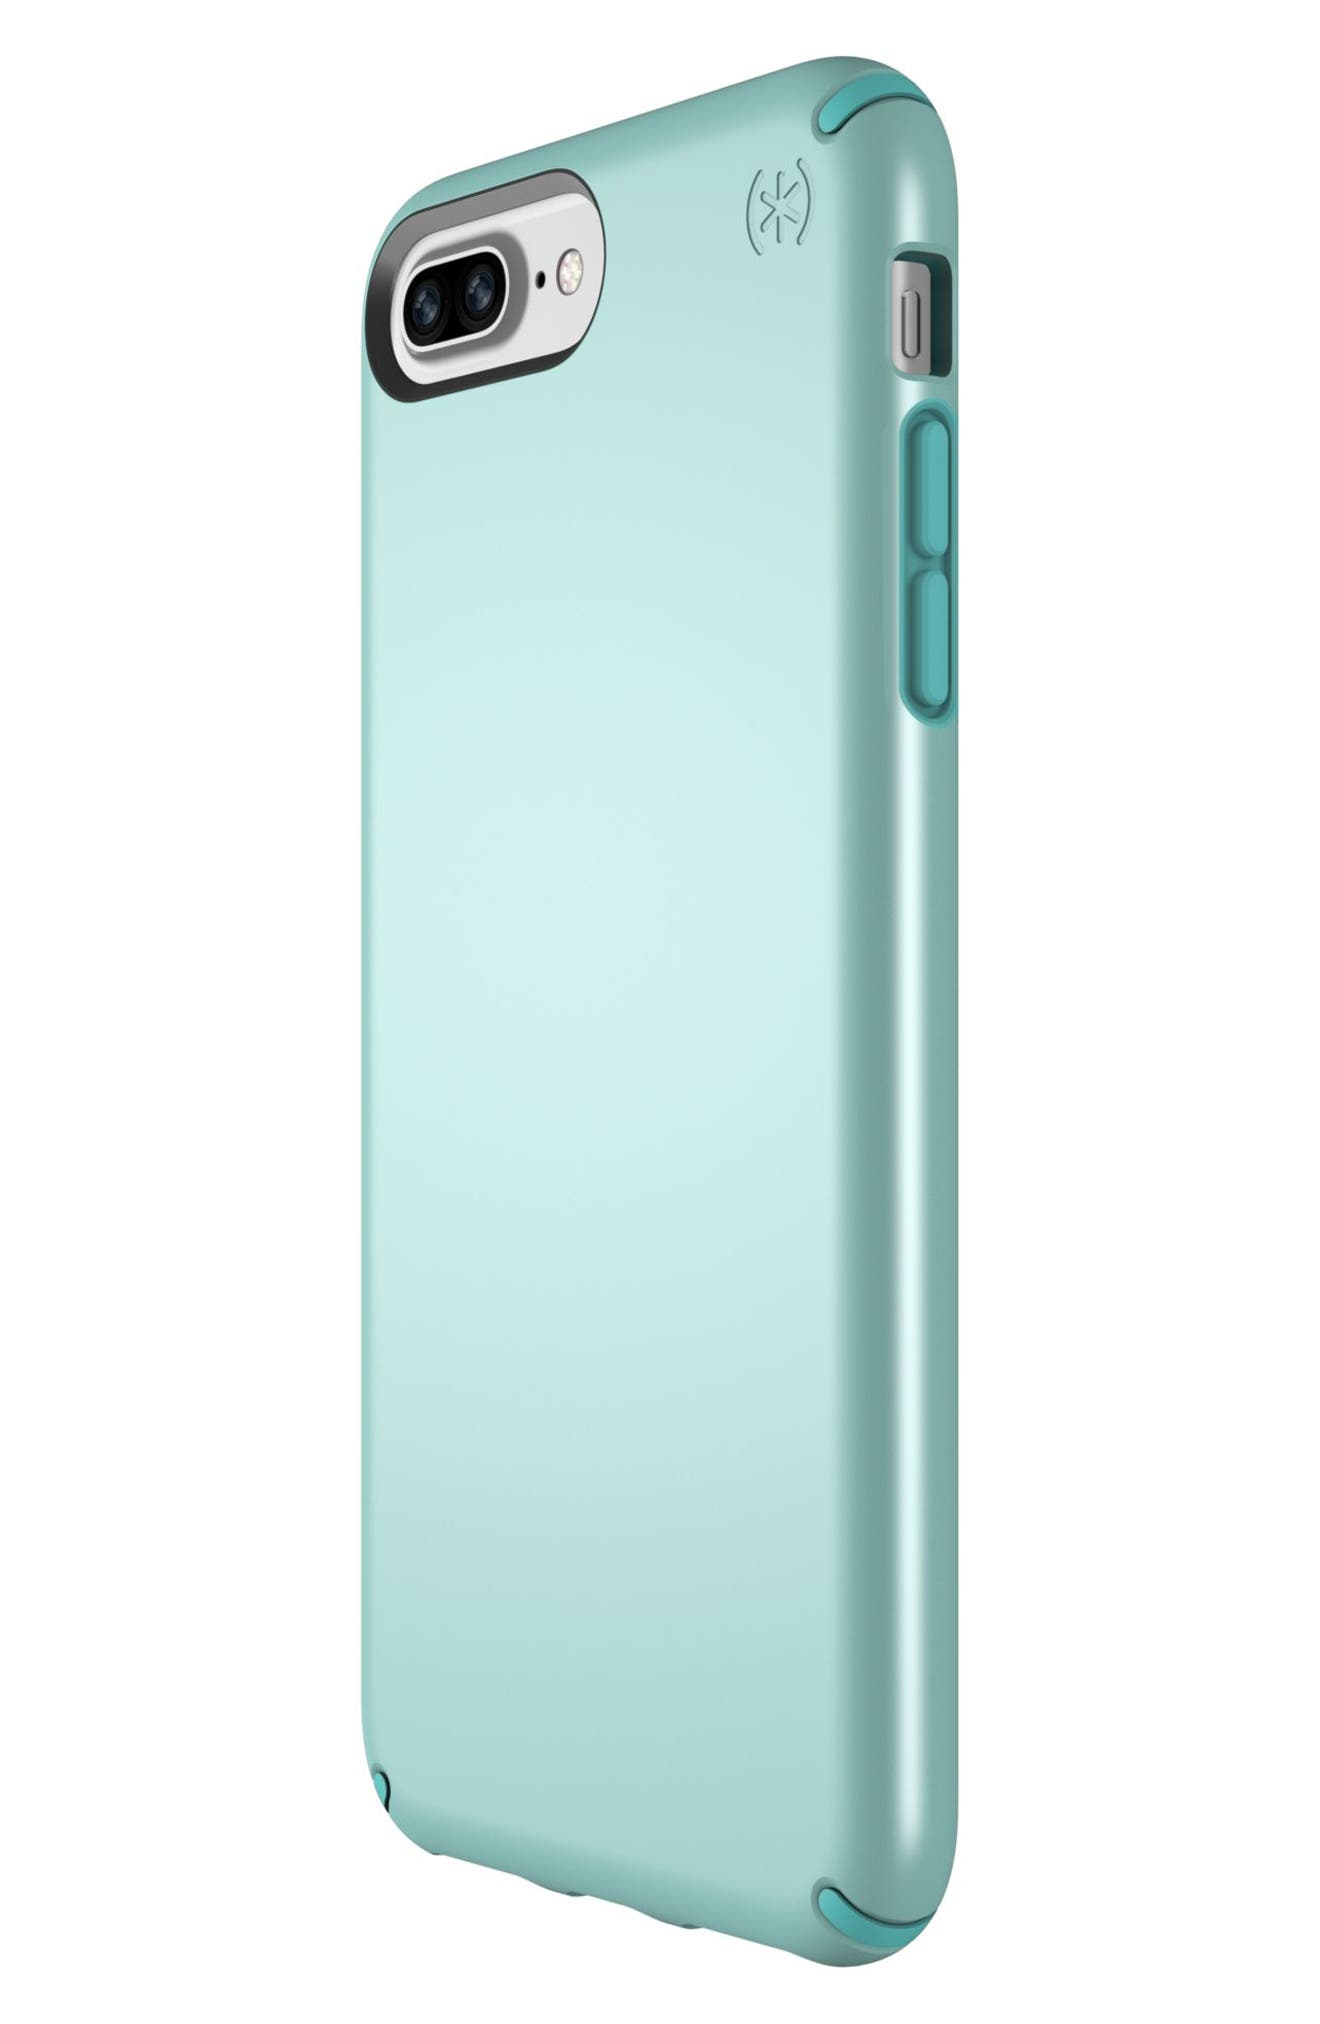 iPhone 6/6s/7/8 Plus Case,                             Alternate thumbnail 5, color,                             PEPPERMINT GREEN/ TEAL